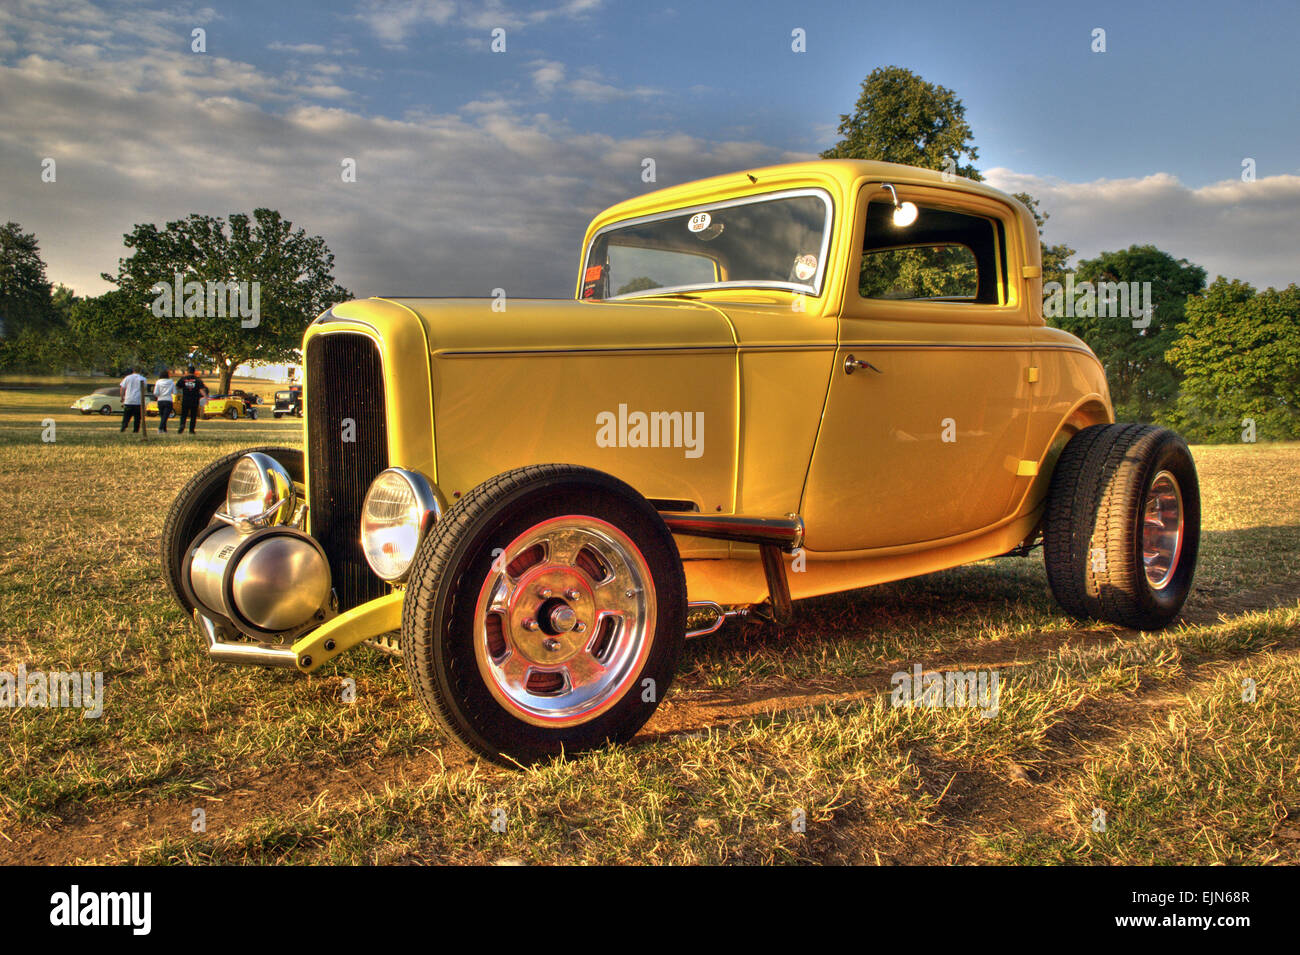 1932 ford model b 3 window coupe hot rod stock photo for 1932 ford 3 window coupe hot rod